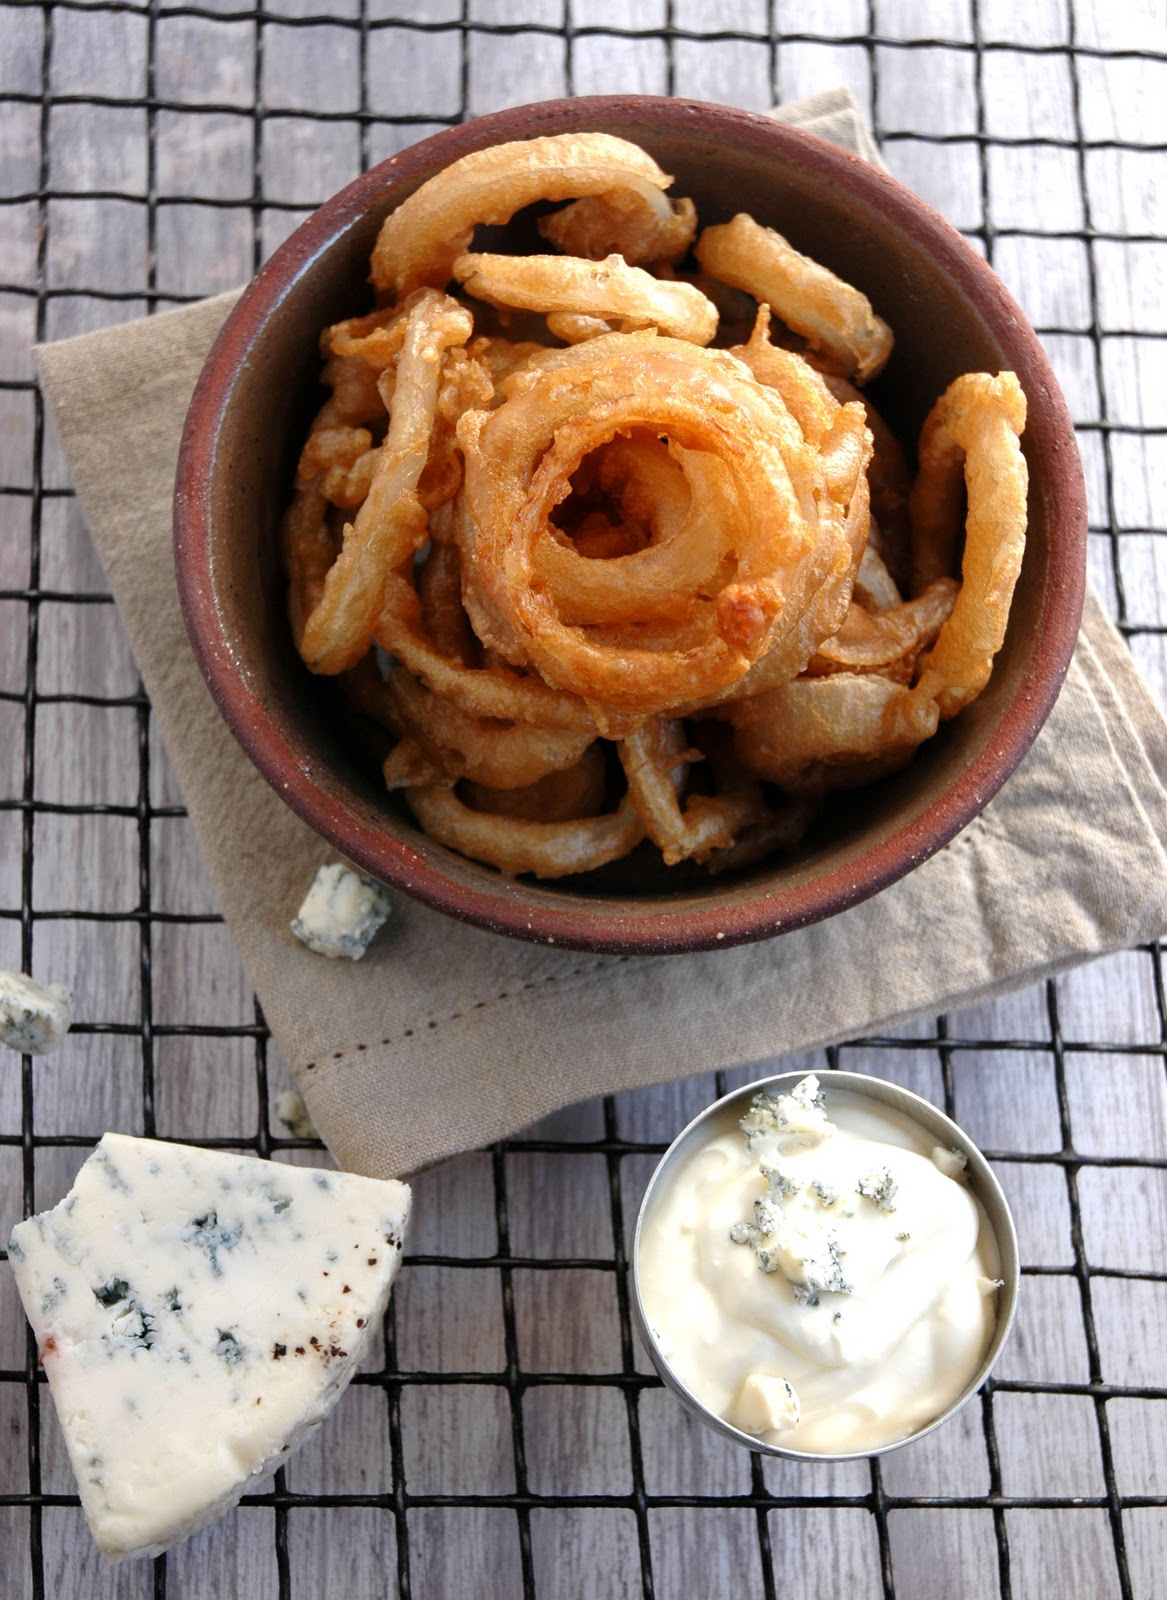 ... battered onion rings beer battered onion rings stout hearted onion